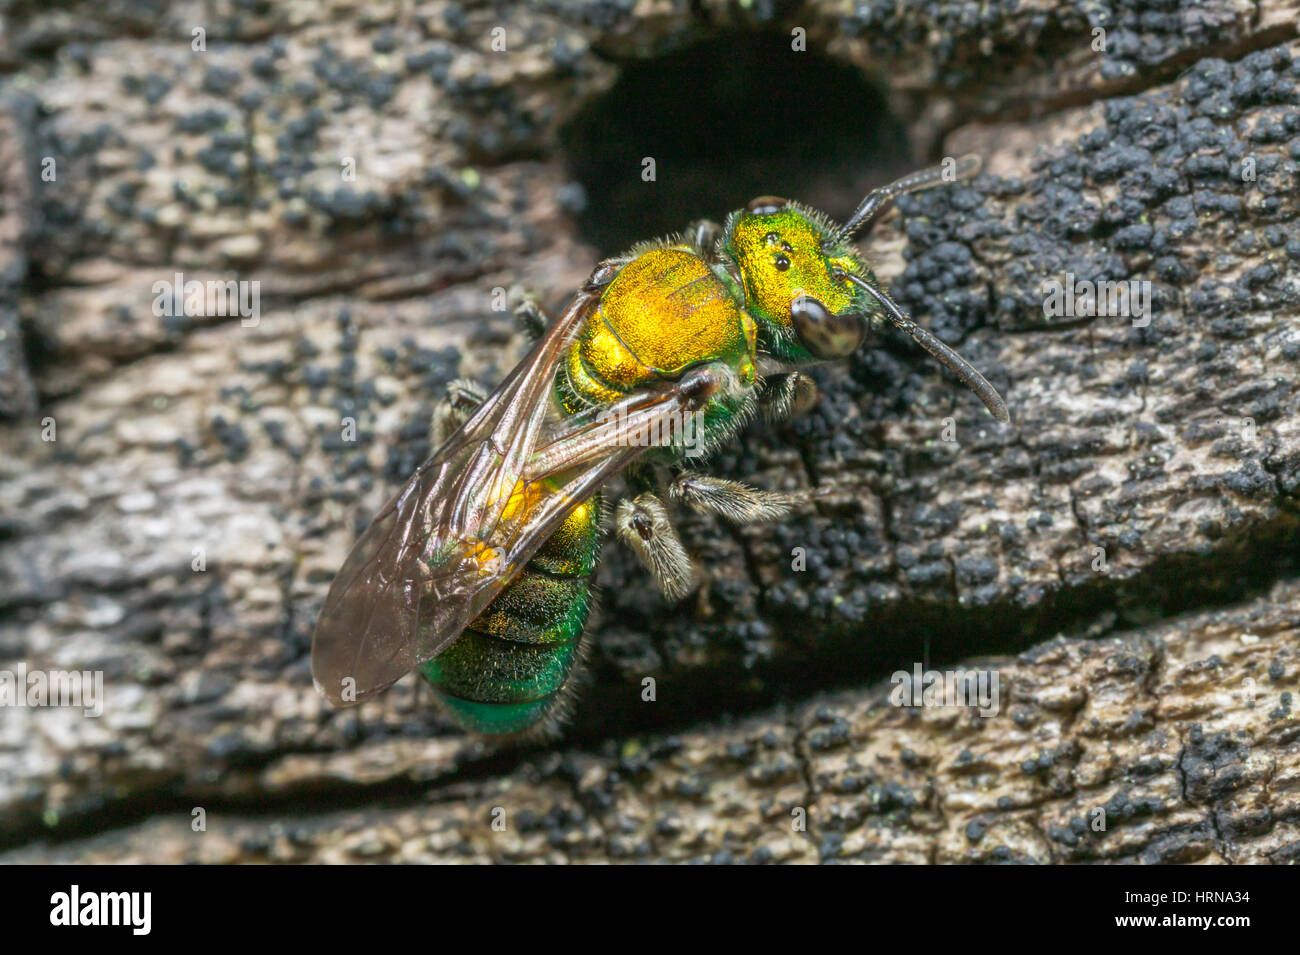 A female Sweat Bee (Augochlora pura) explores a cavity in a dead log. - Stock Image